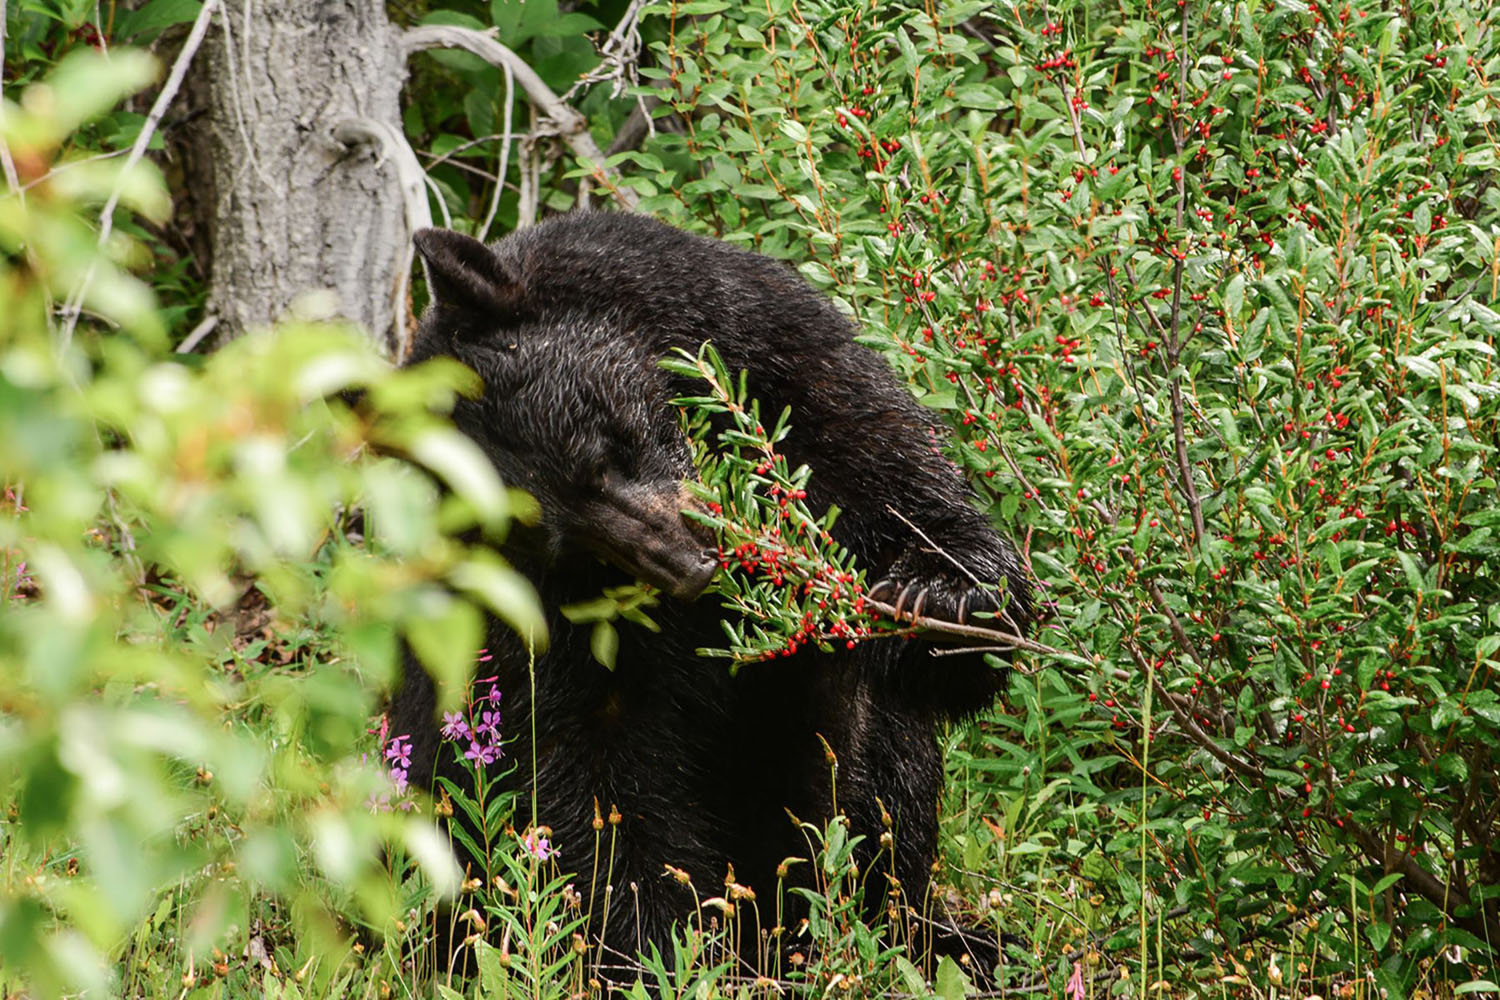 A bear eats berries in Alaska